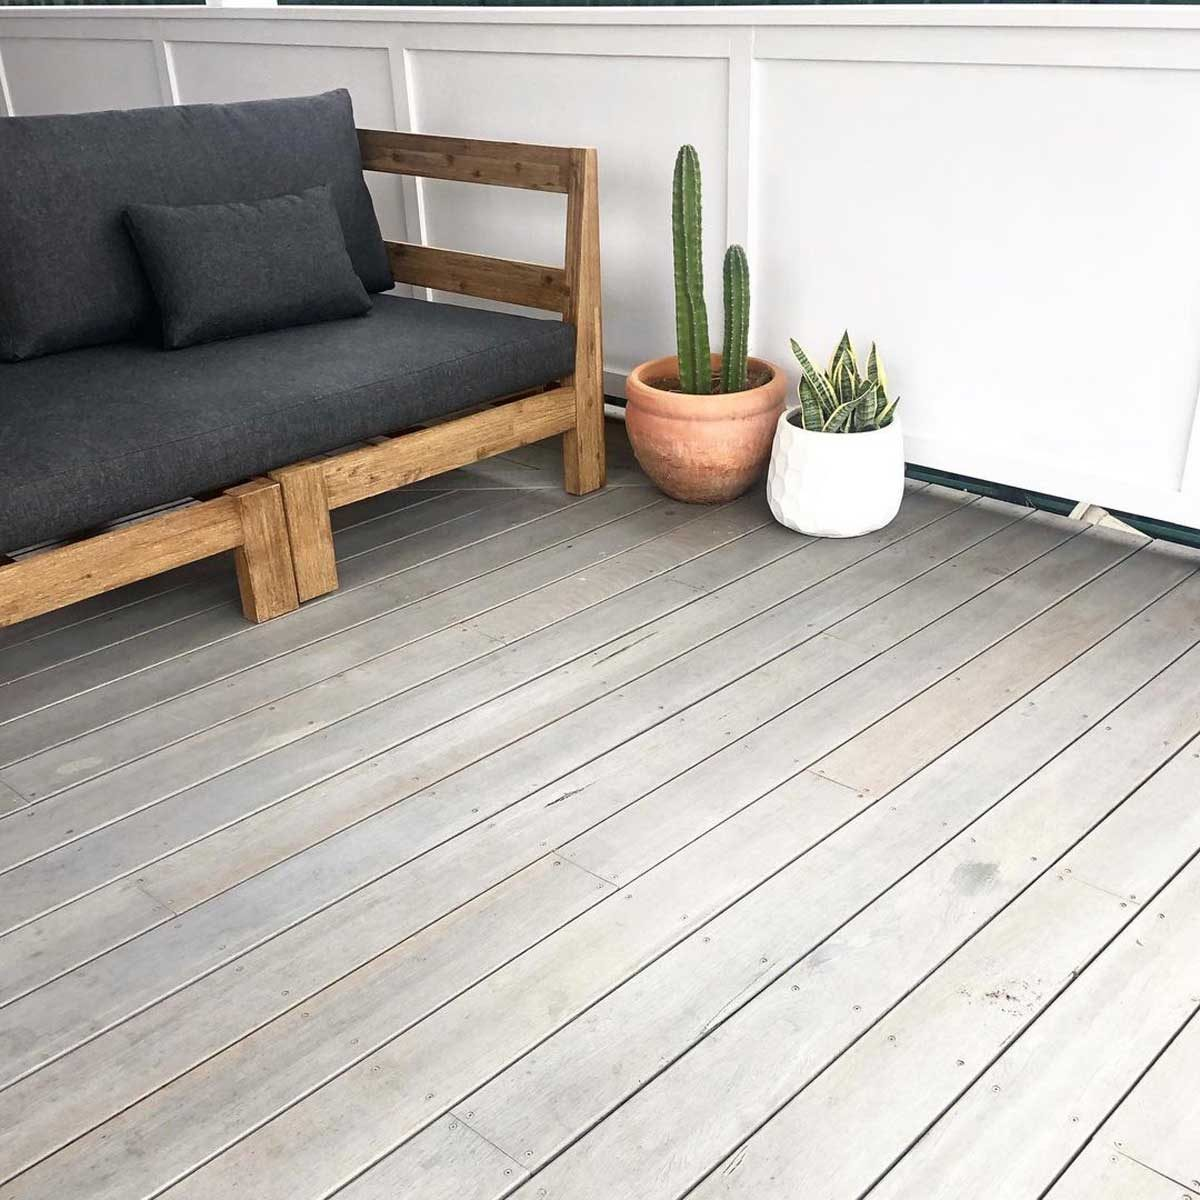 20 Deck Paint and Stain Color Ideas   The Family Handyman